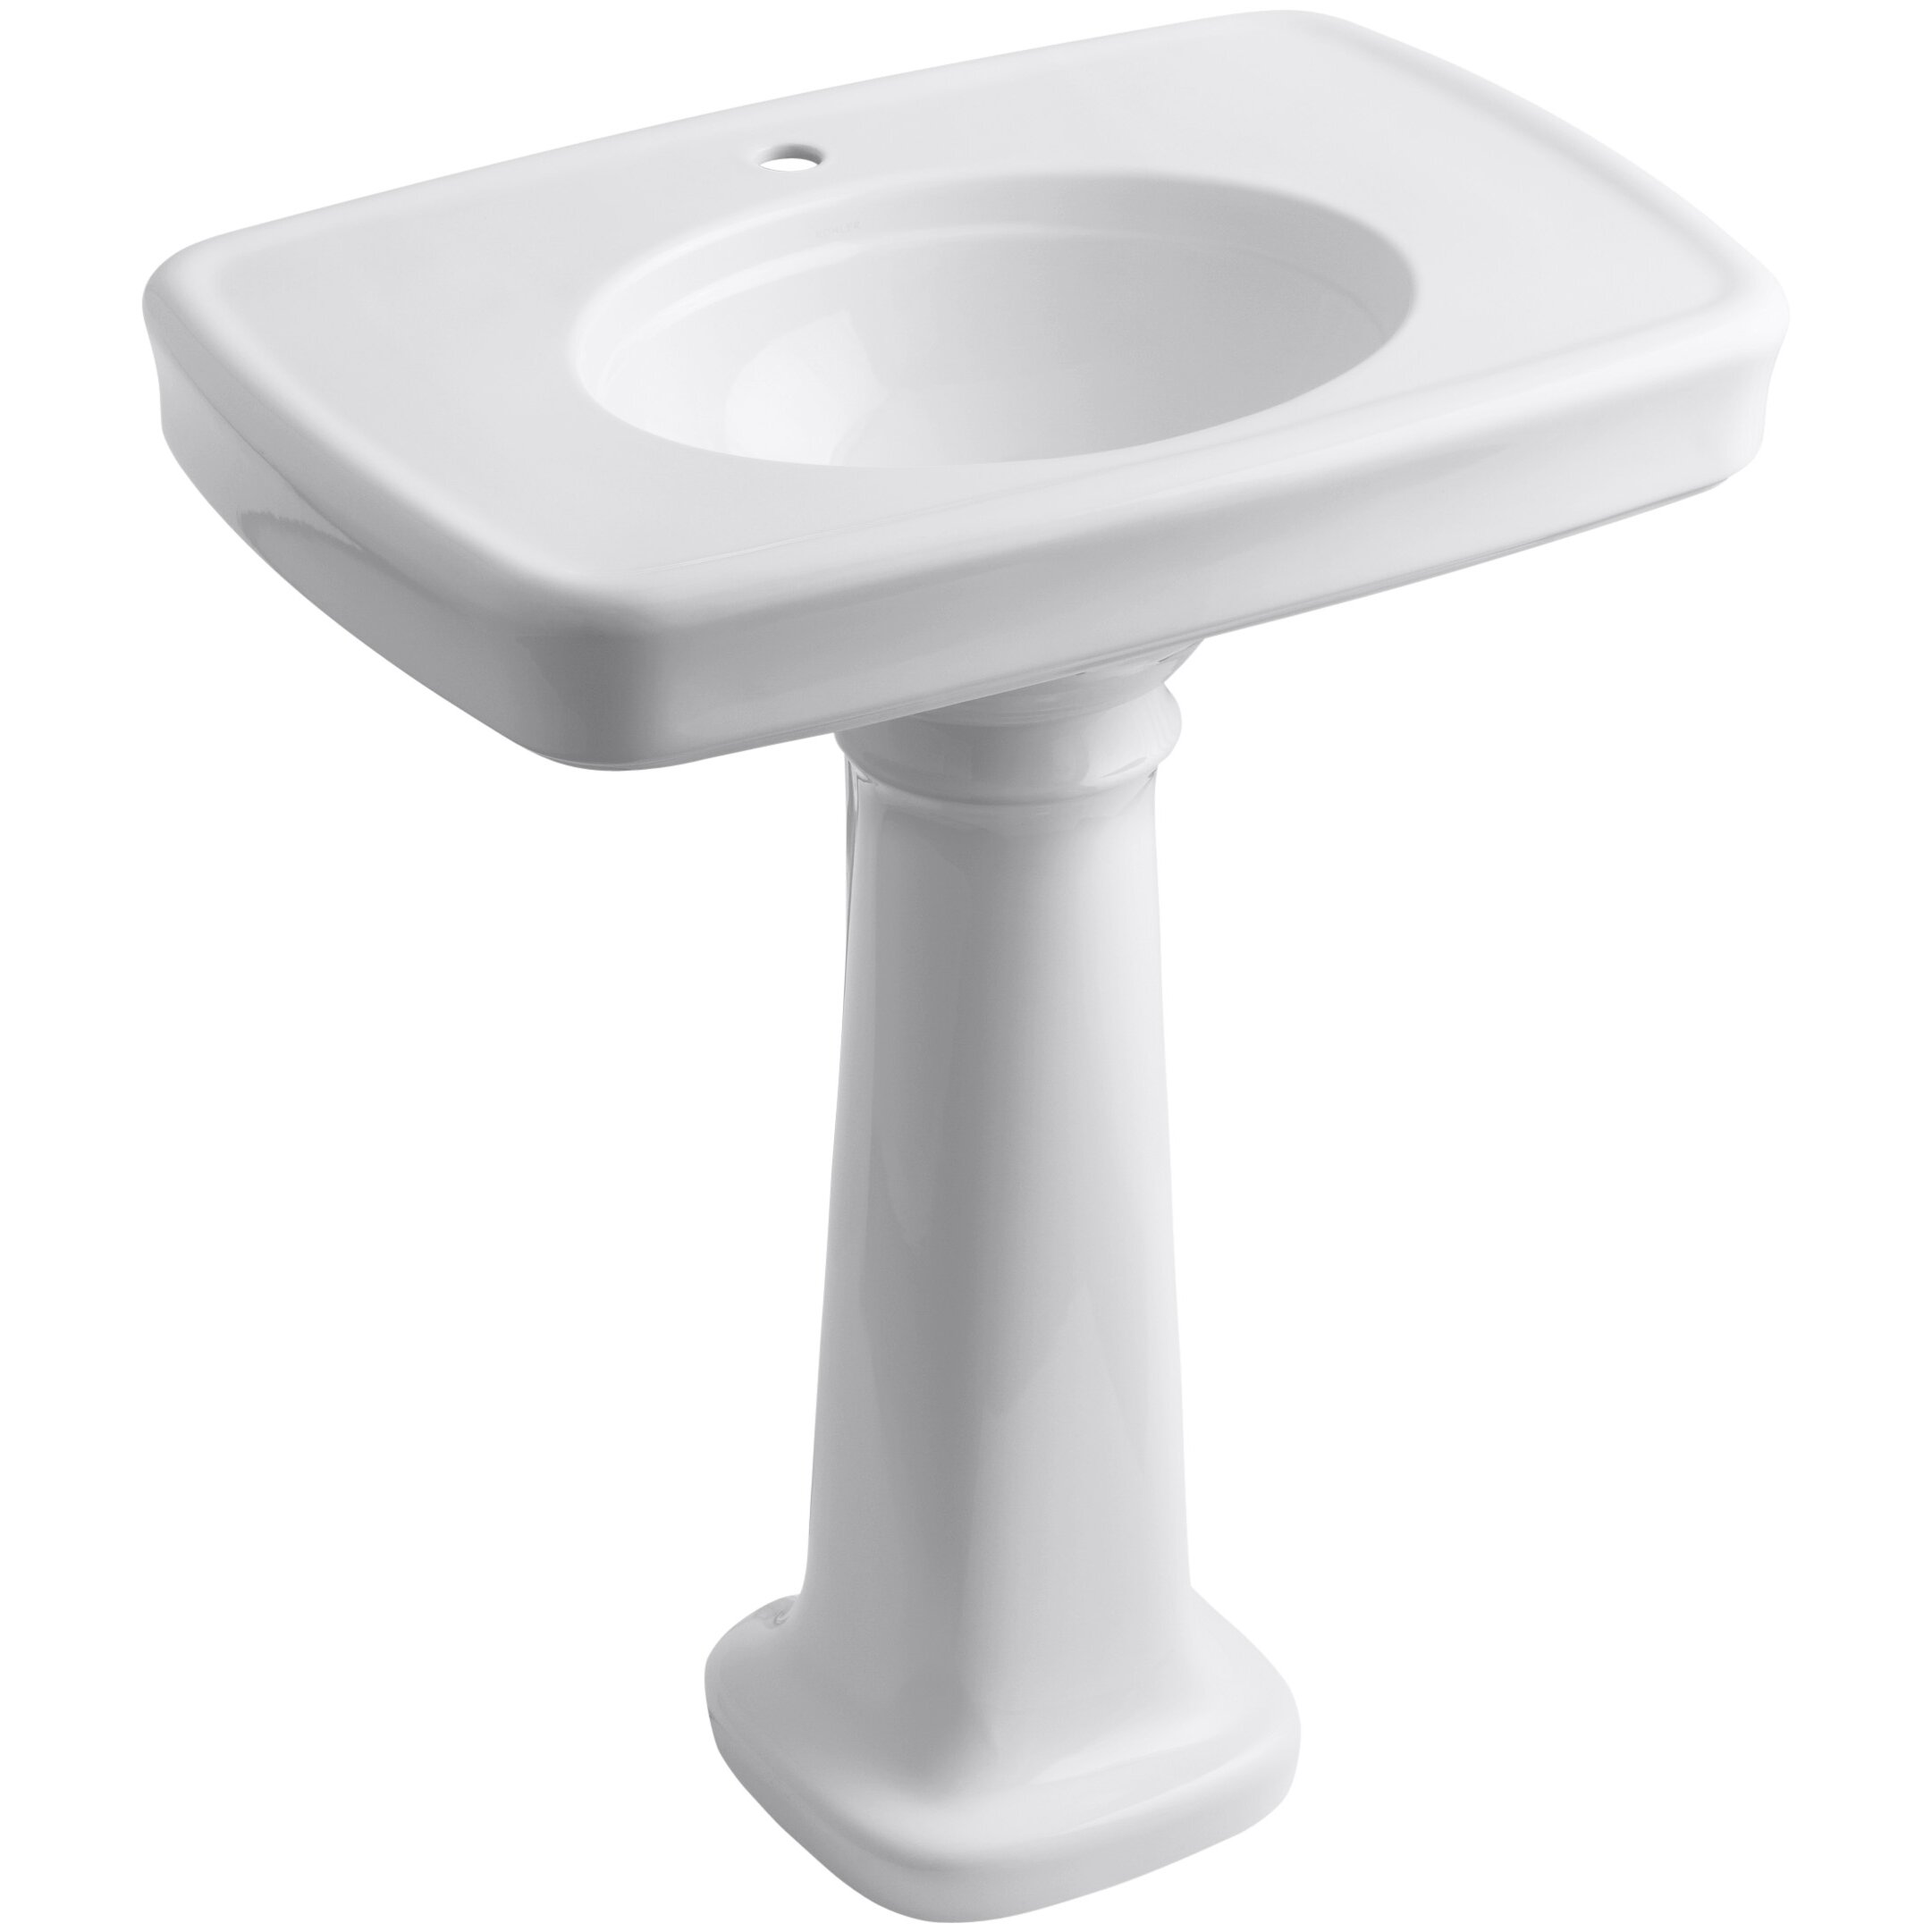 Kohler Bancroft 30 Pedestal Bathroom Sink Reviews Wayfair